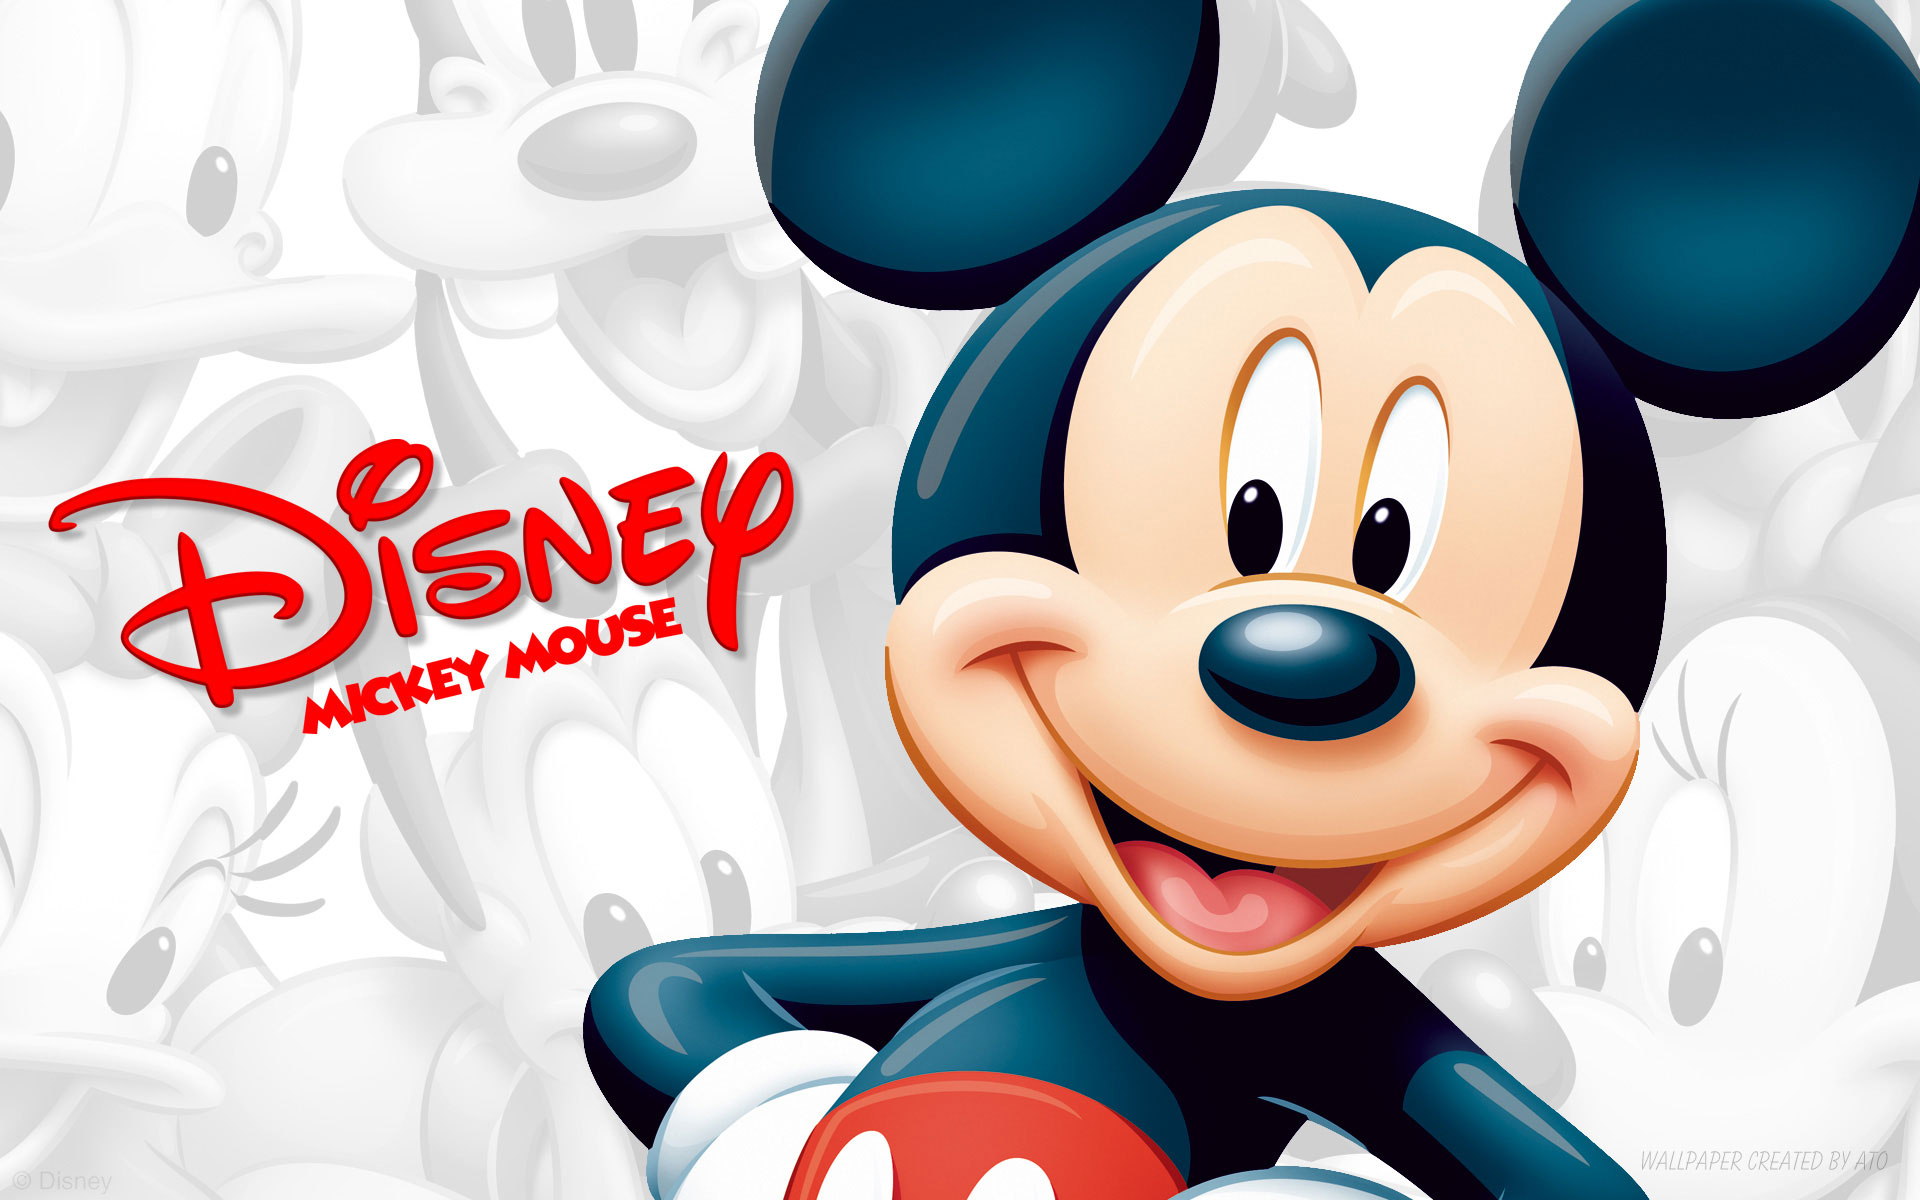 Disney Mickey Mouse 1151.15 Kb